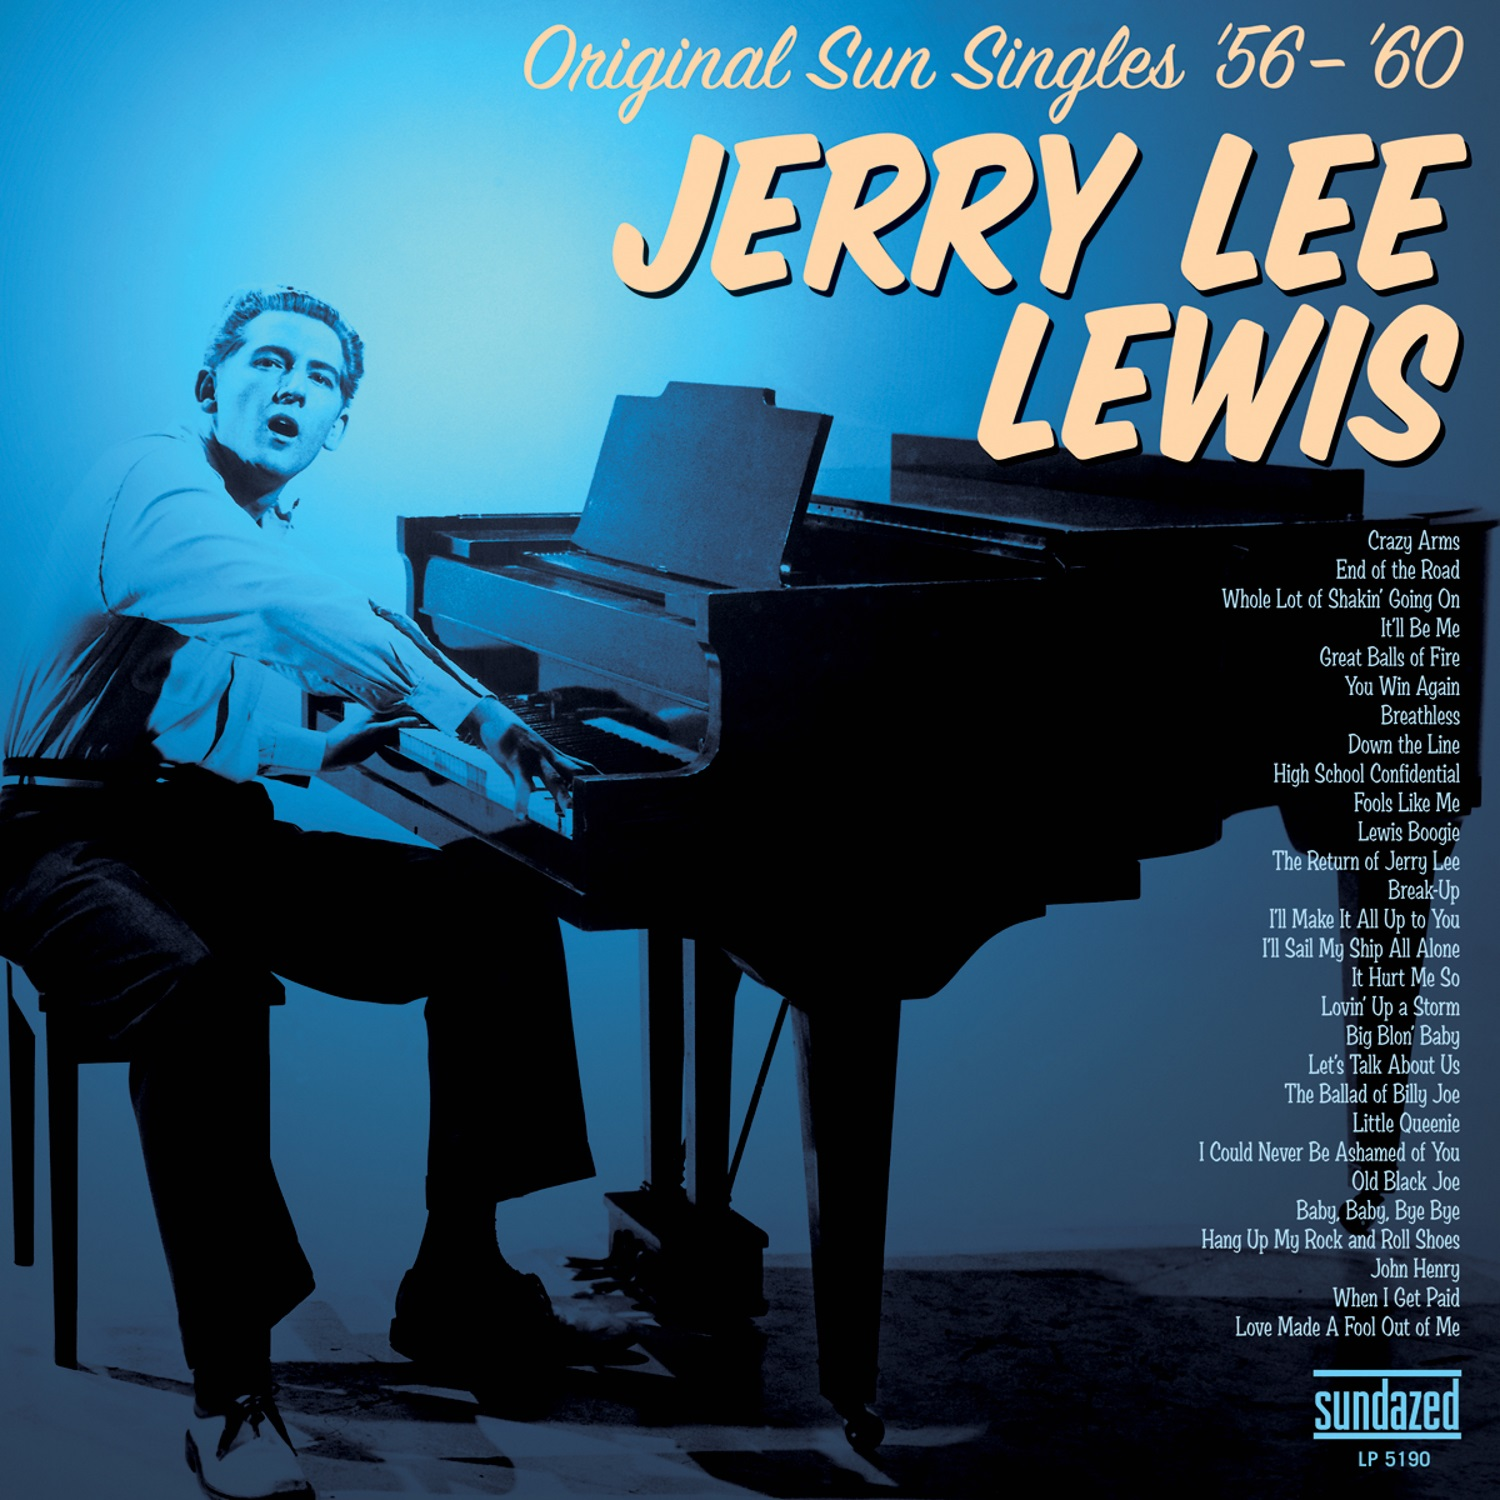 Lewis, Jerry Lee - Original Sun Singles '56 - '60 CD